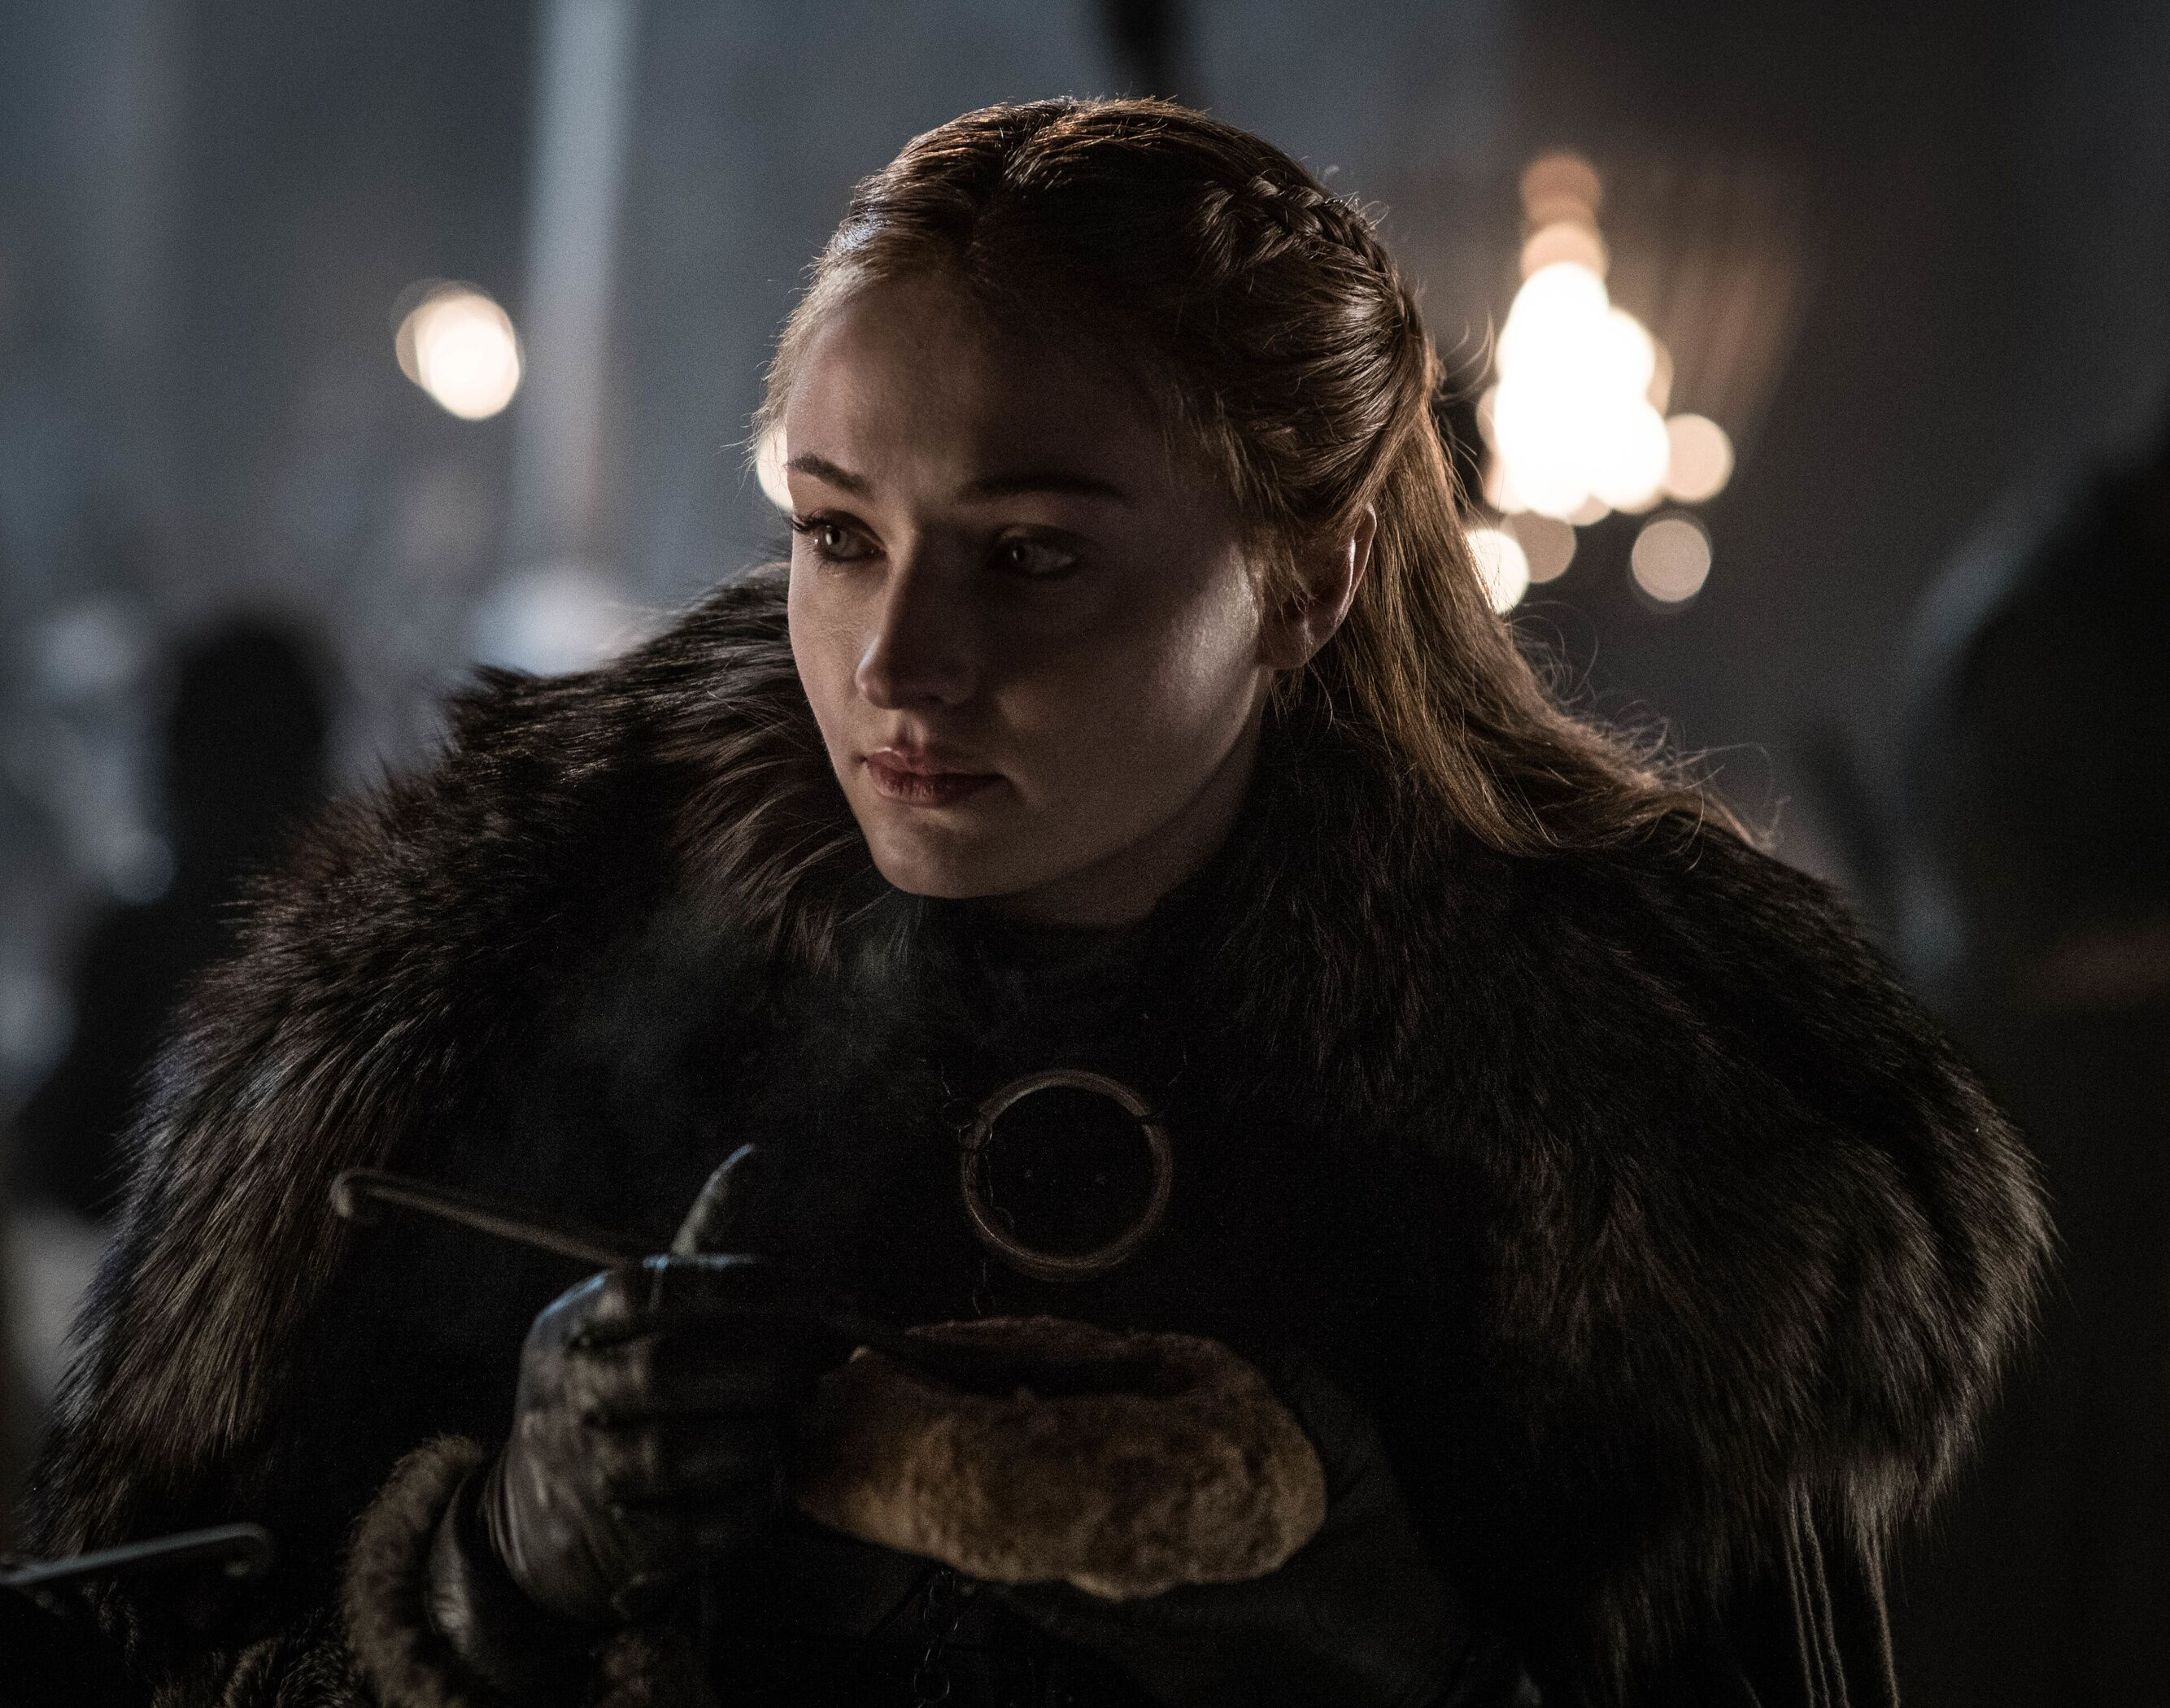 Sophie Turner roasts Game of Thrones fans who hate the last season